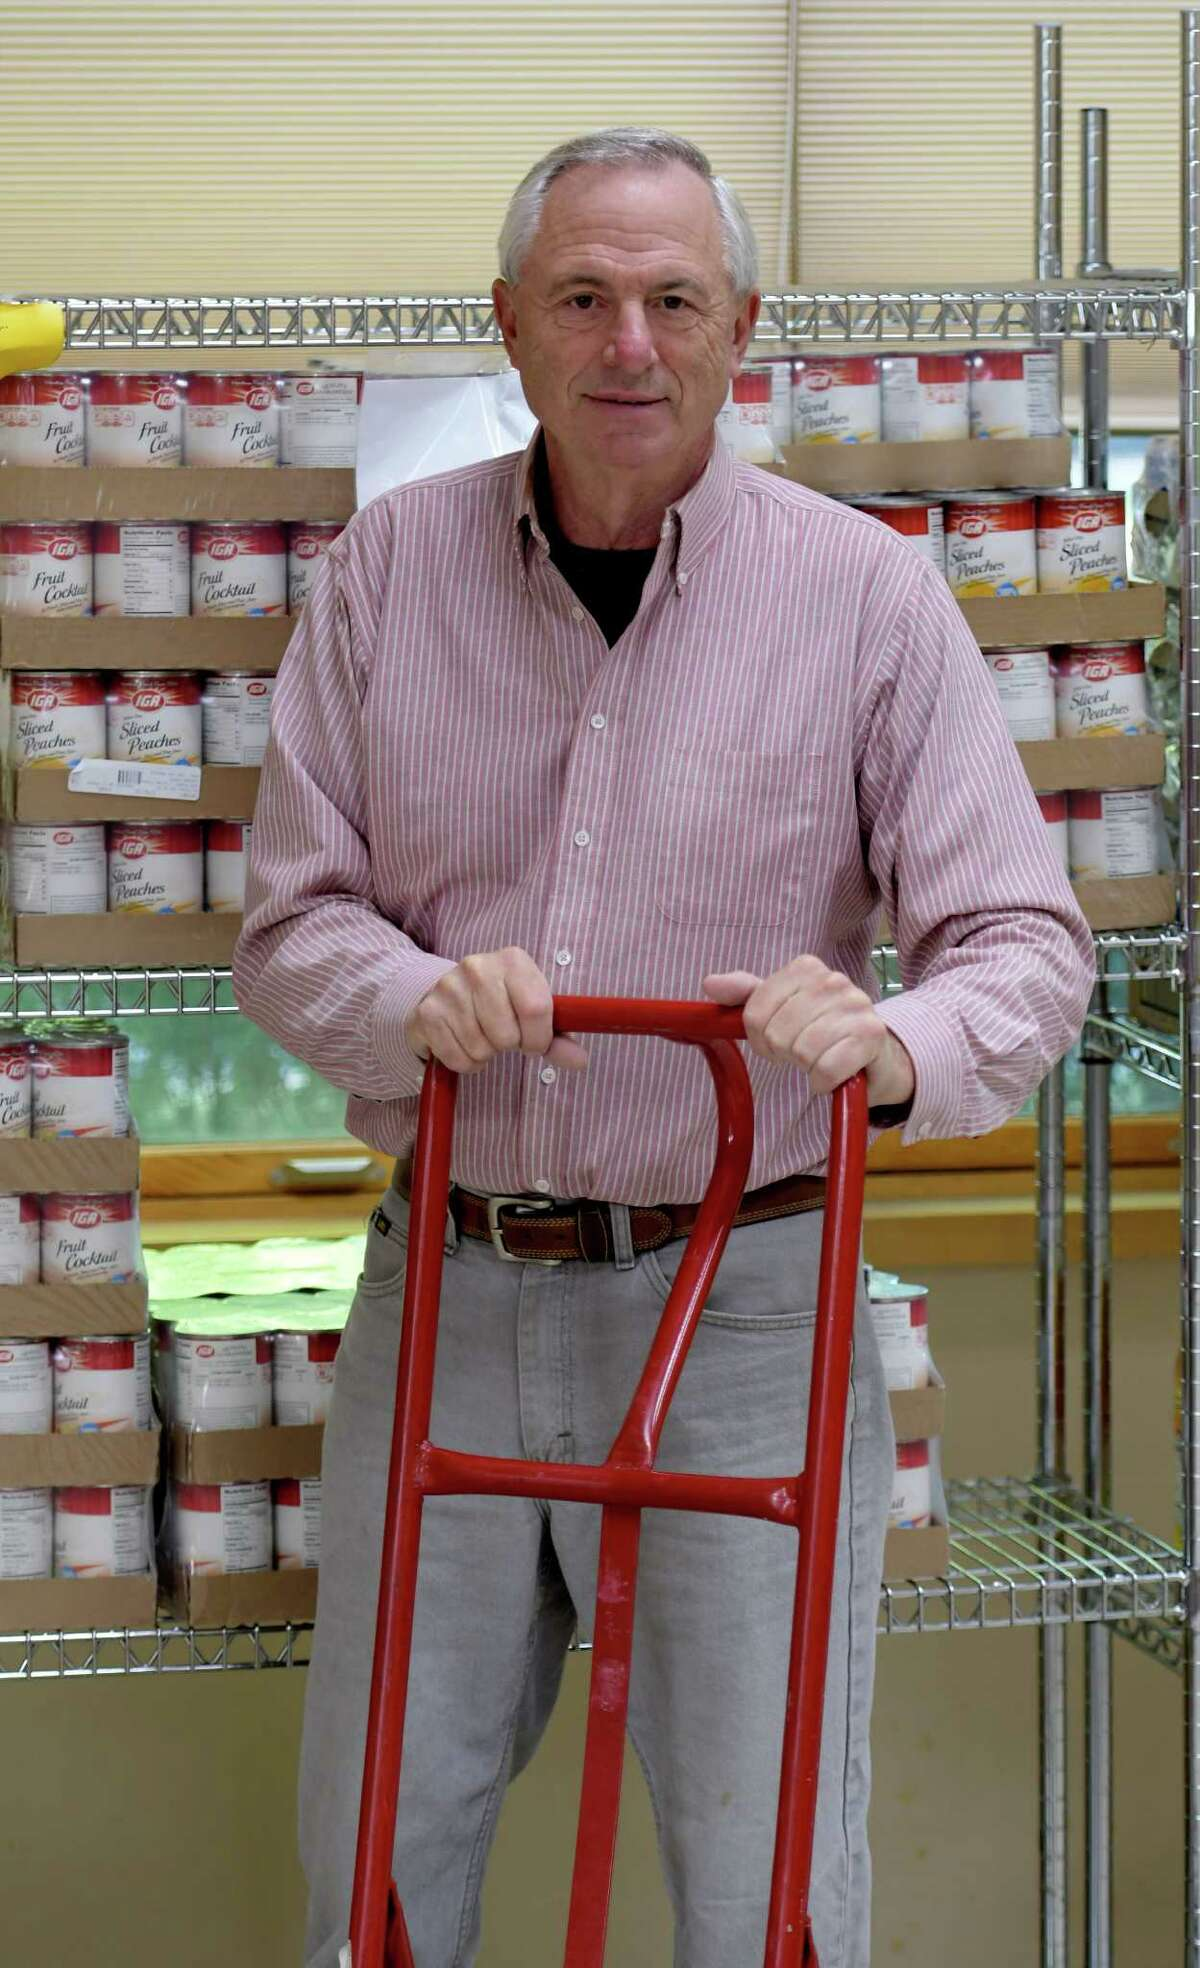 Bruce Sowalski unloads food at the St. Vincent's Parish Food Pantry Monday Sept. 26 2016 in Albany, N.Y. Sowalski died of COVID-19 in 2020. (Skip Dickstein/Times Union)